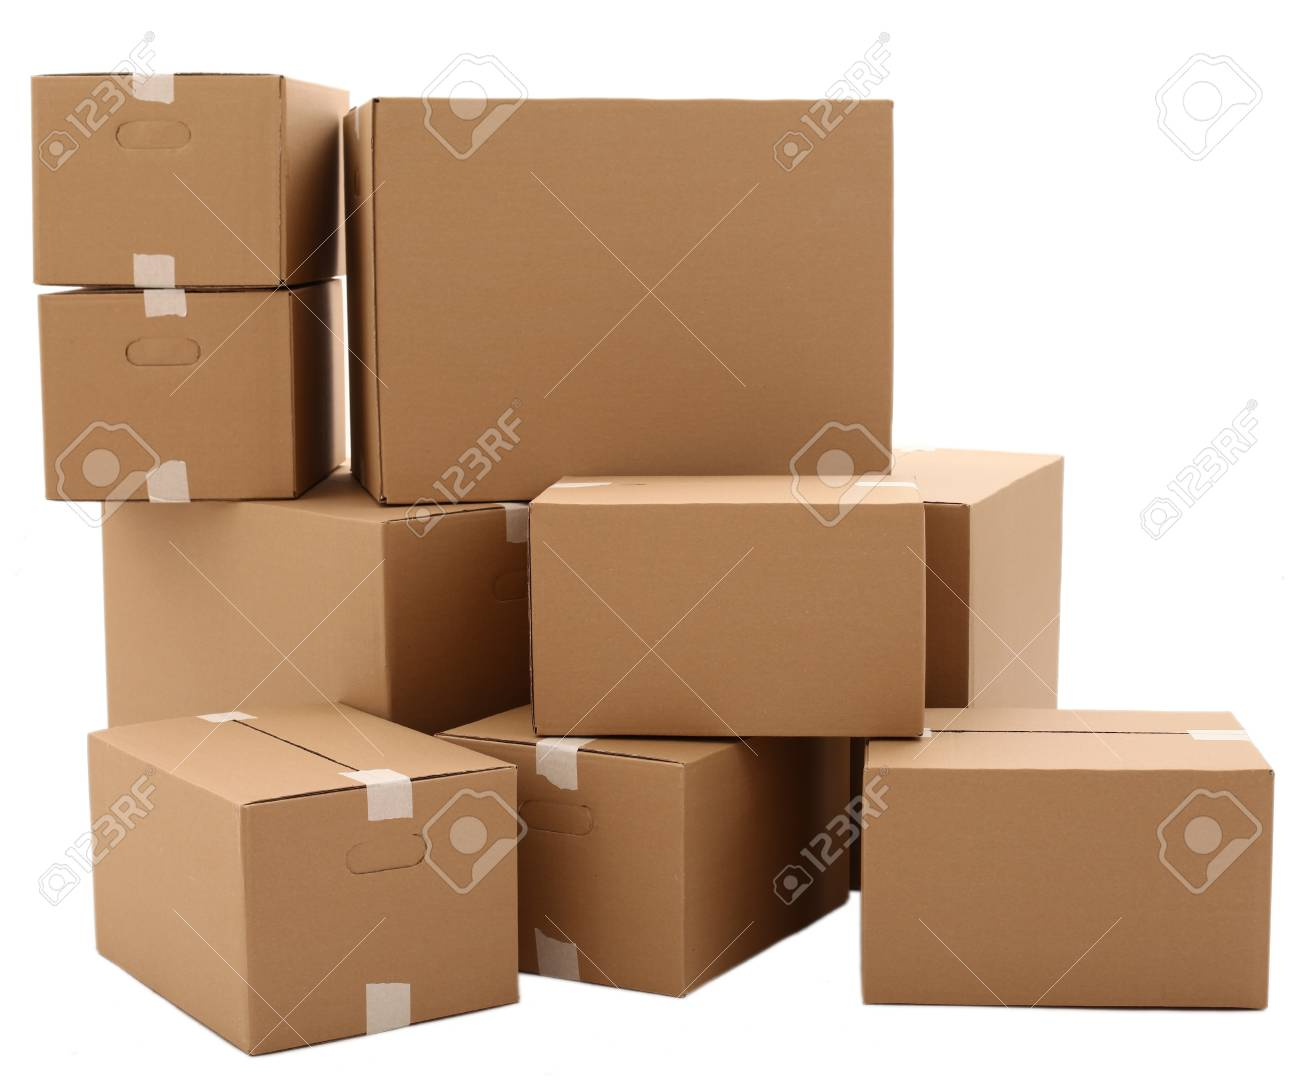 Cardboard boxes isolated over white background Stock Photo - 17721391